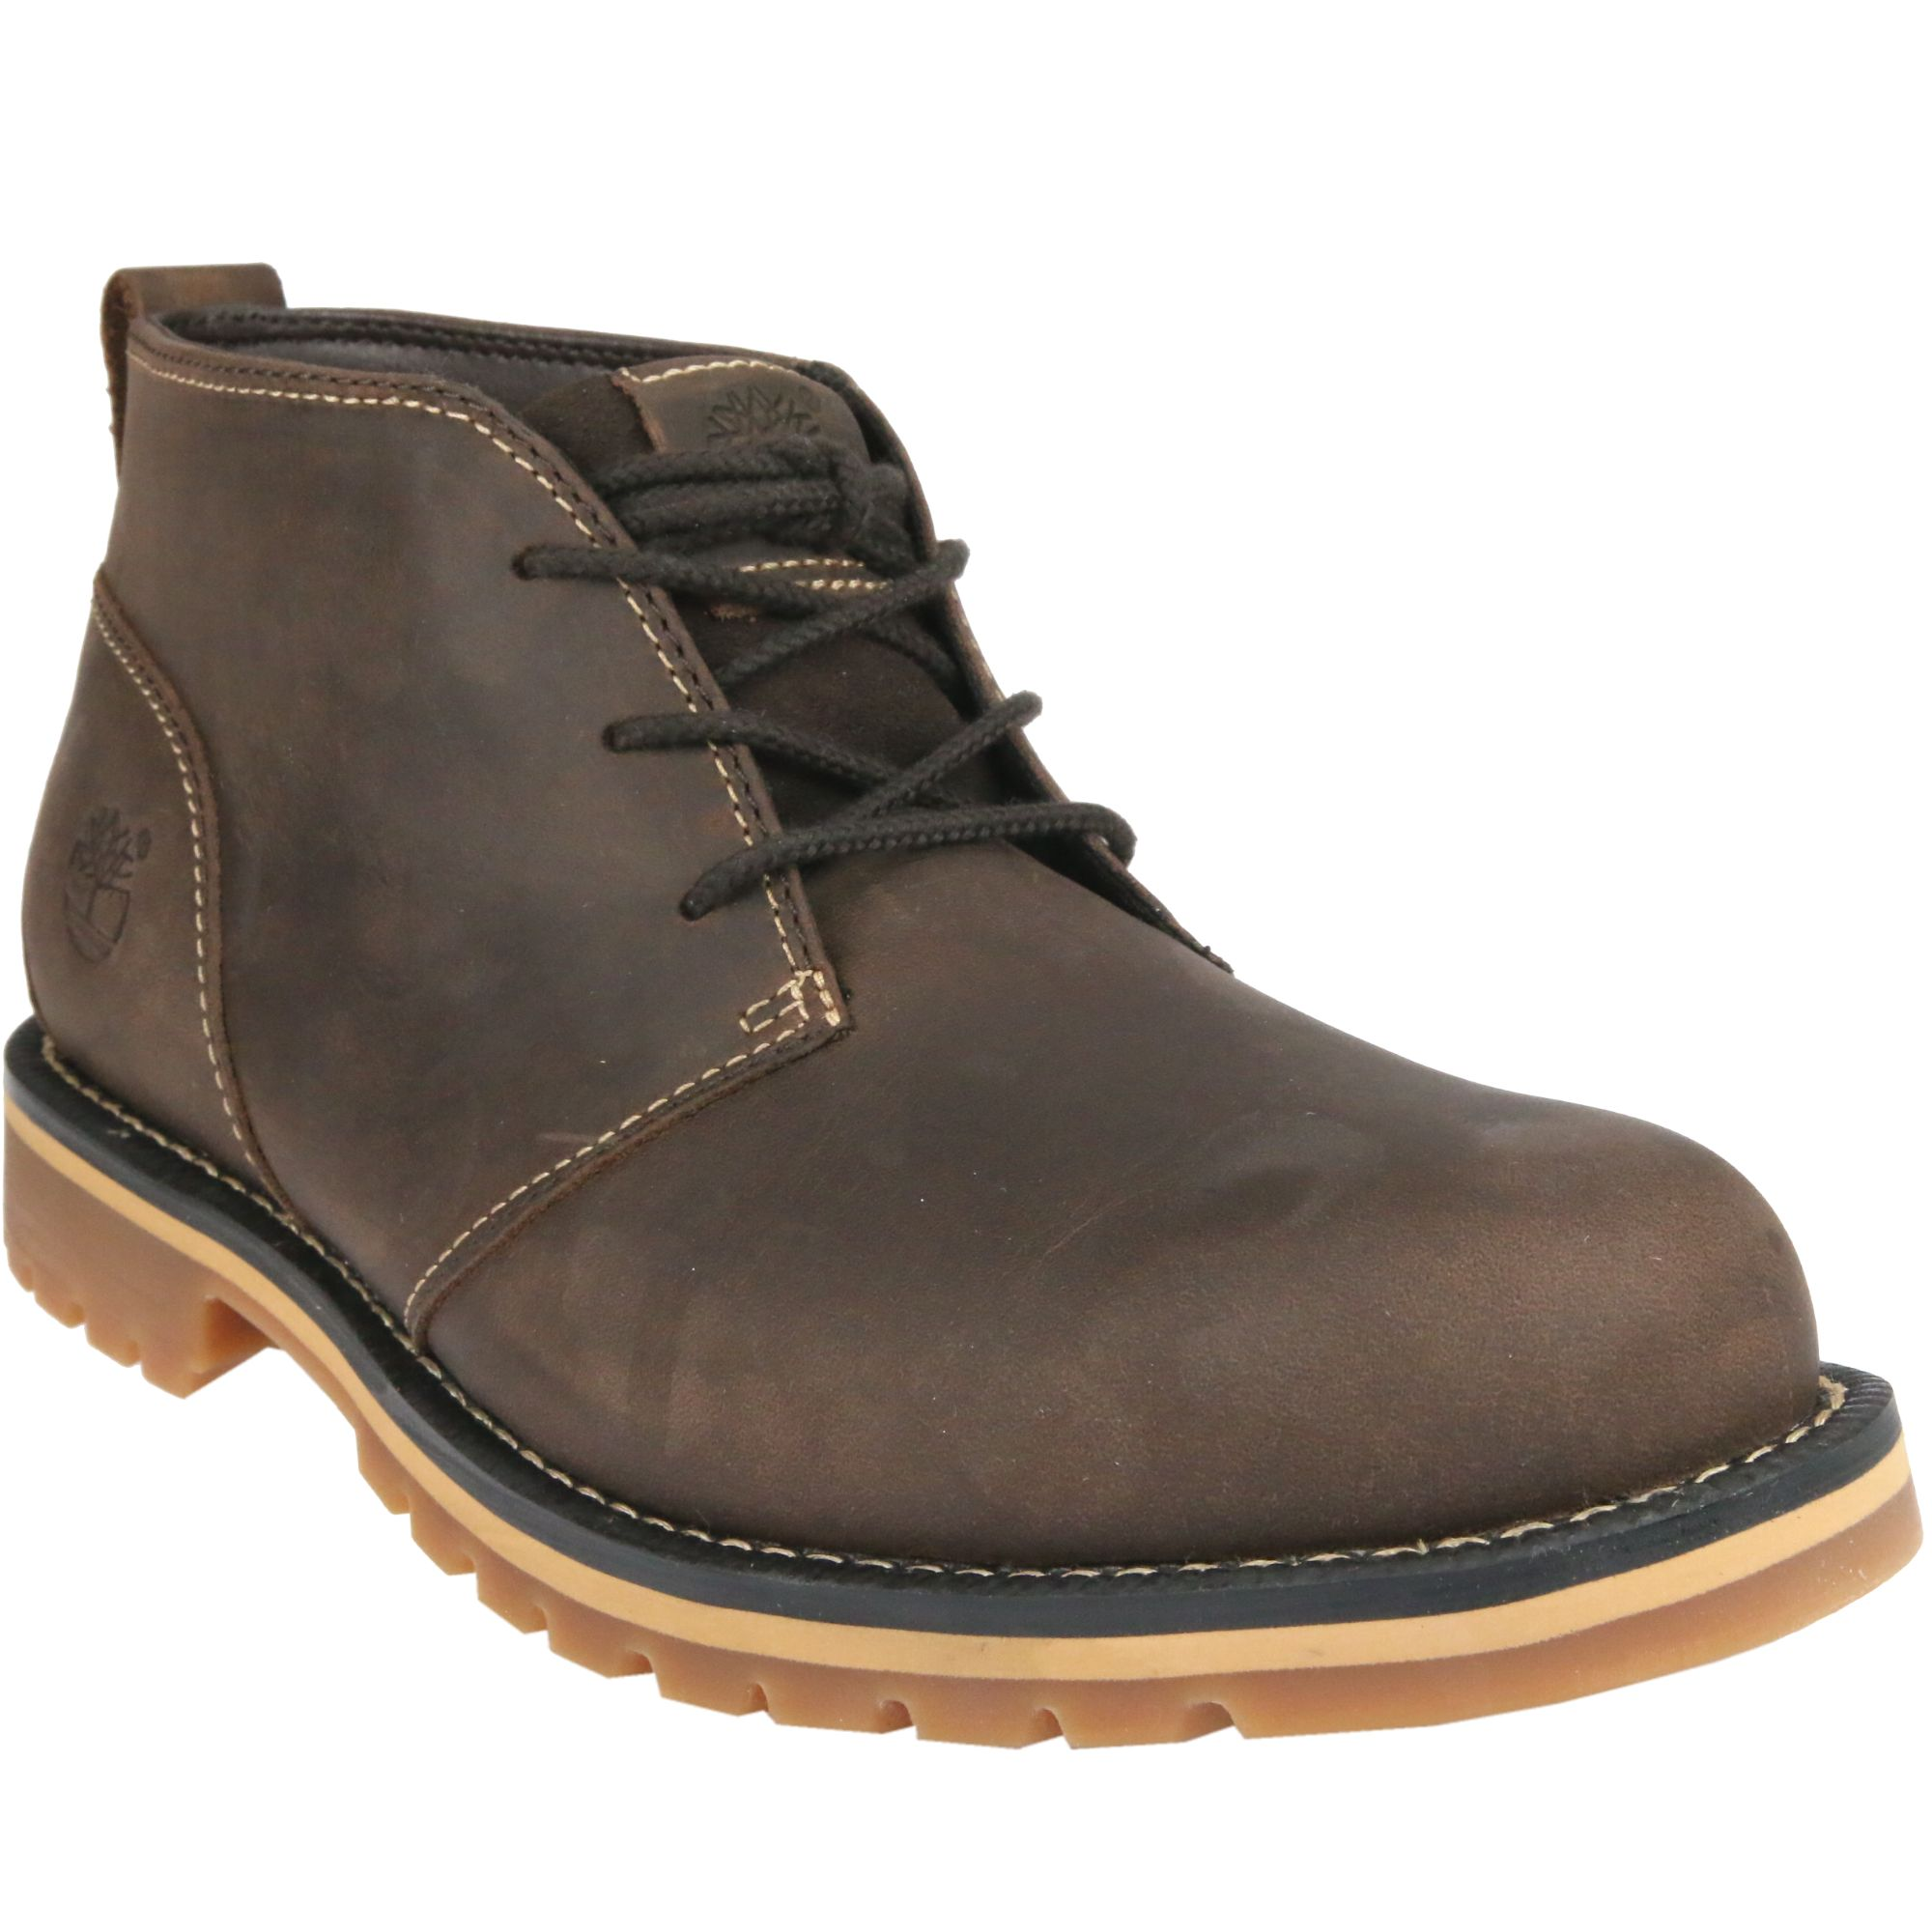 Size 13 Mens Chukka Boots with FREE Shipping & Exchanges, and a % price guarantee. Choose from a huge selection of Size 13 Mens Chukka Boots styles.